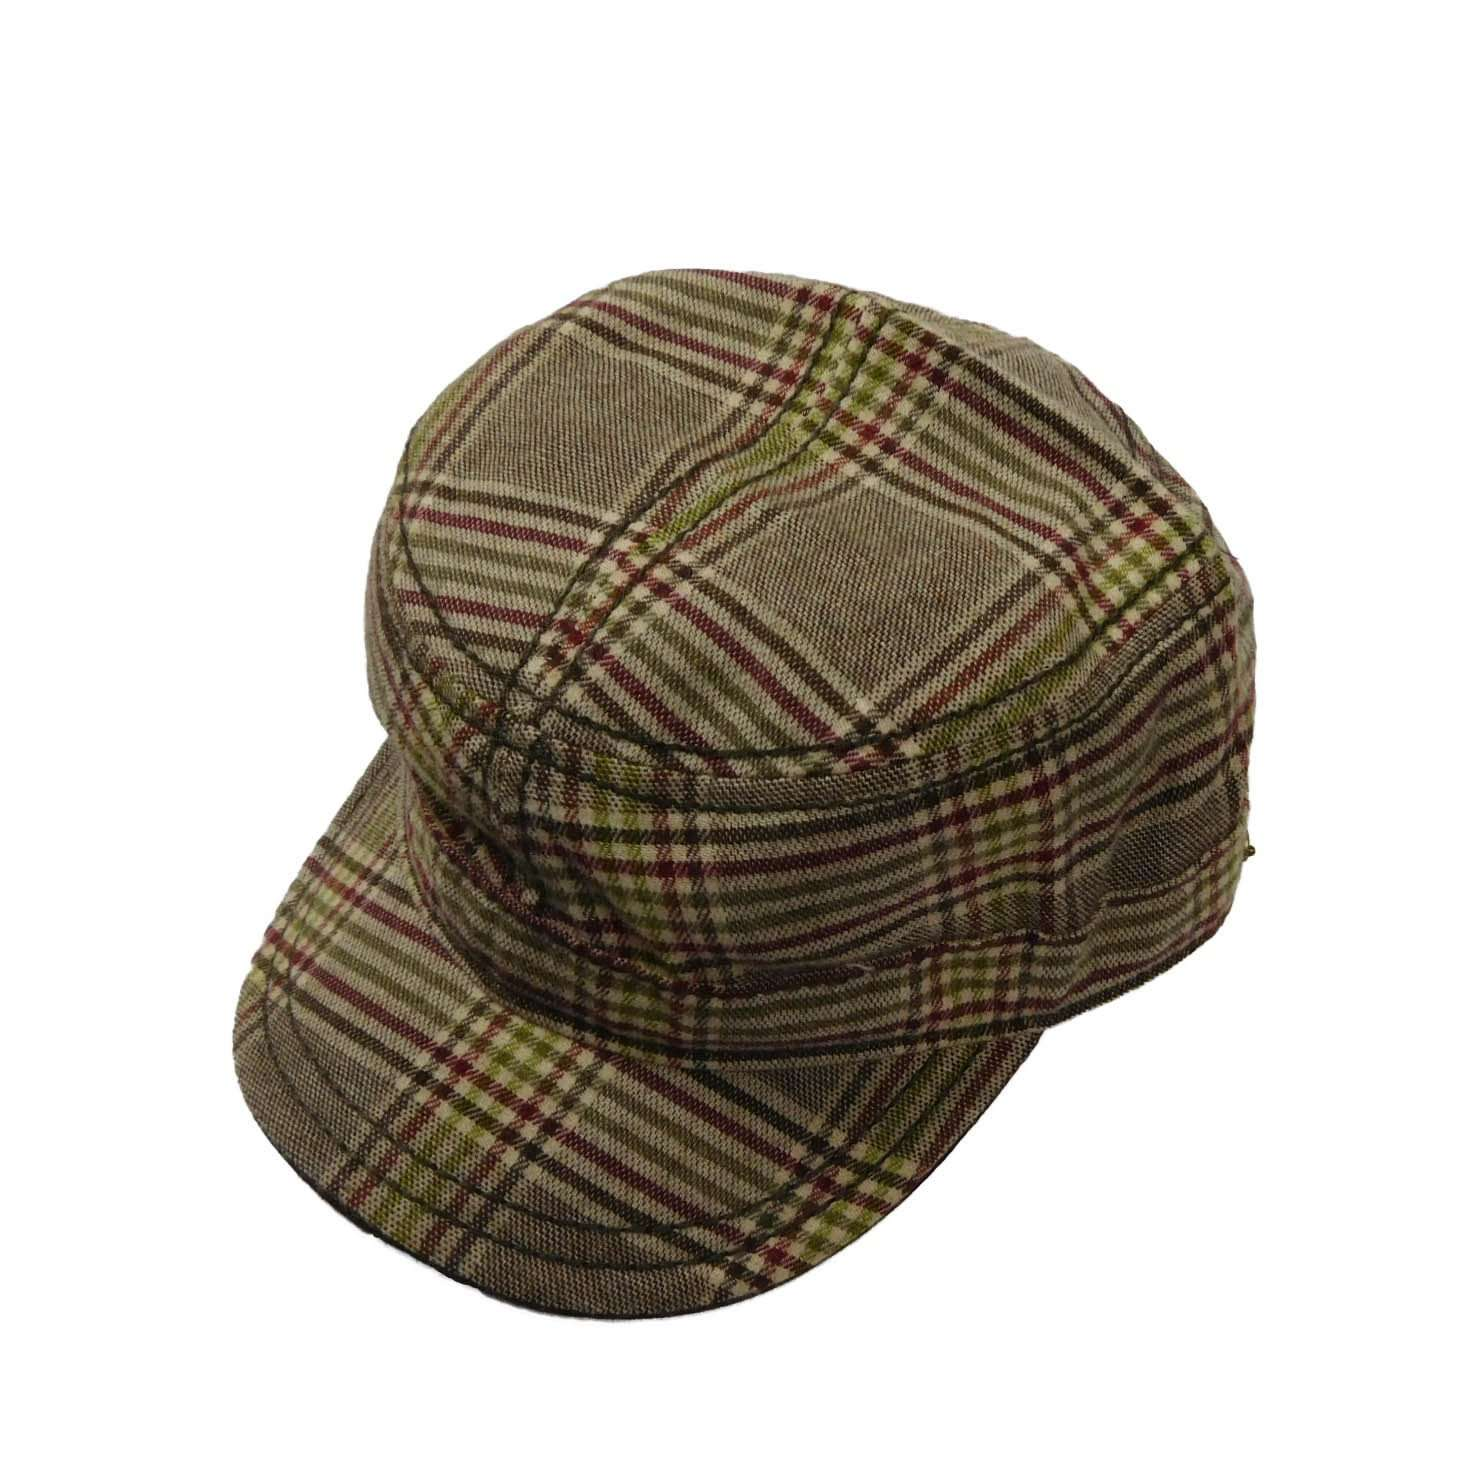 Stetson Plaid Cadet Cap - SetarTrading Hats